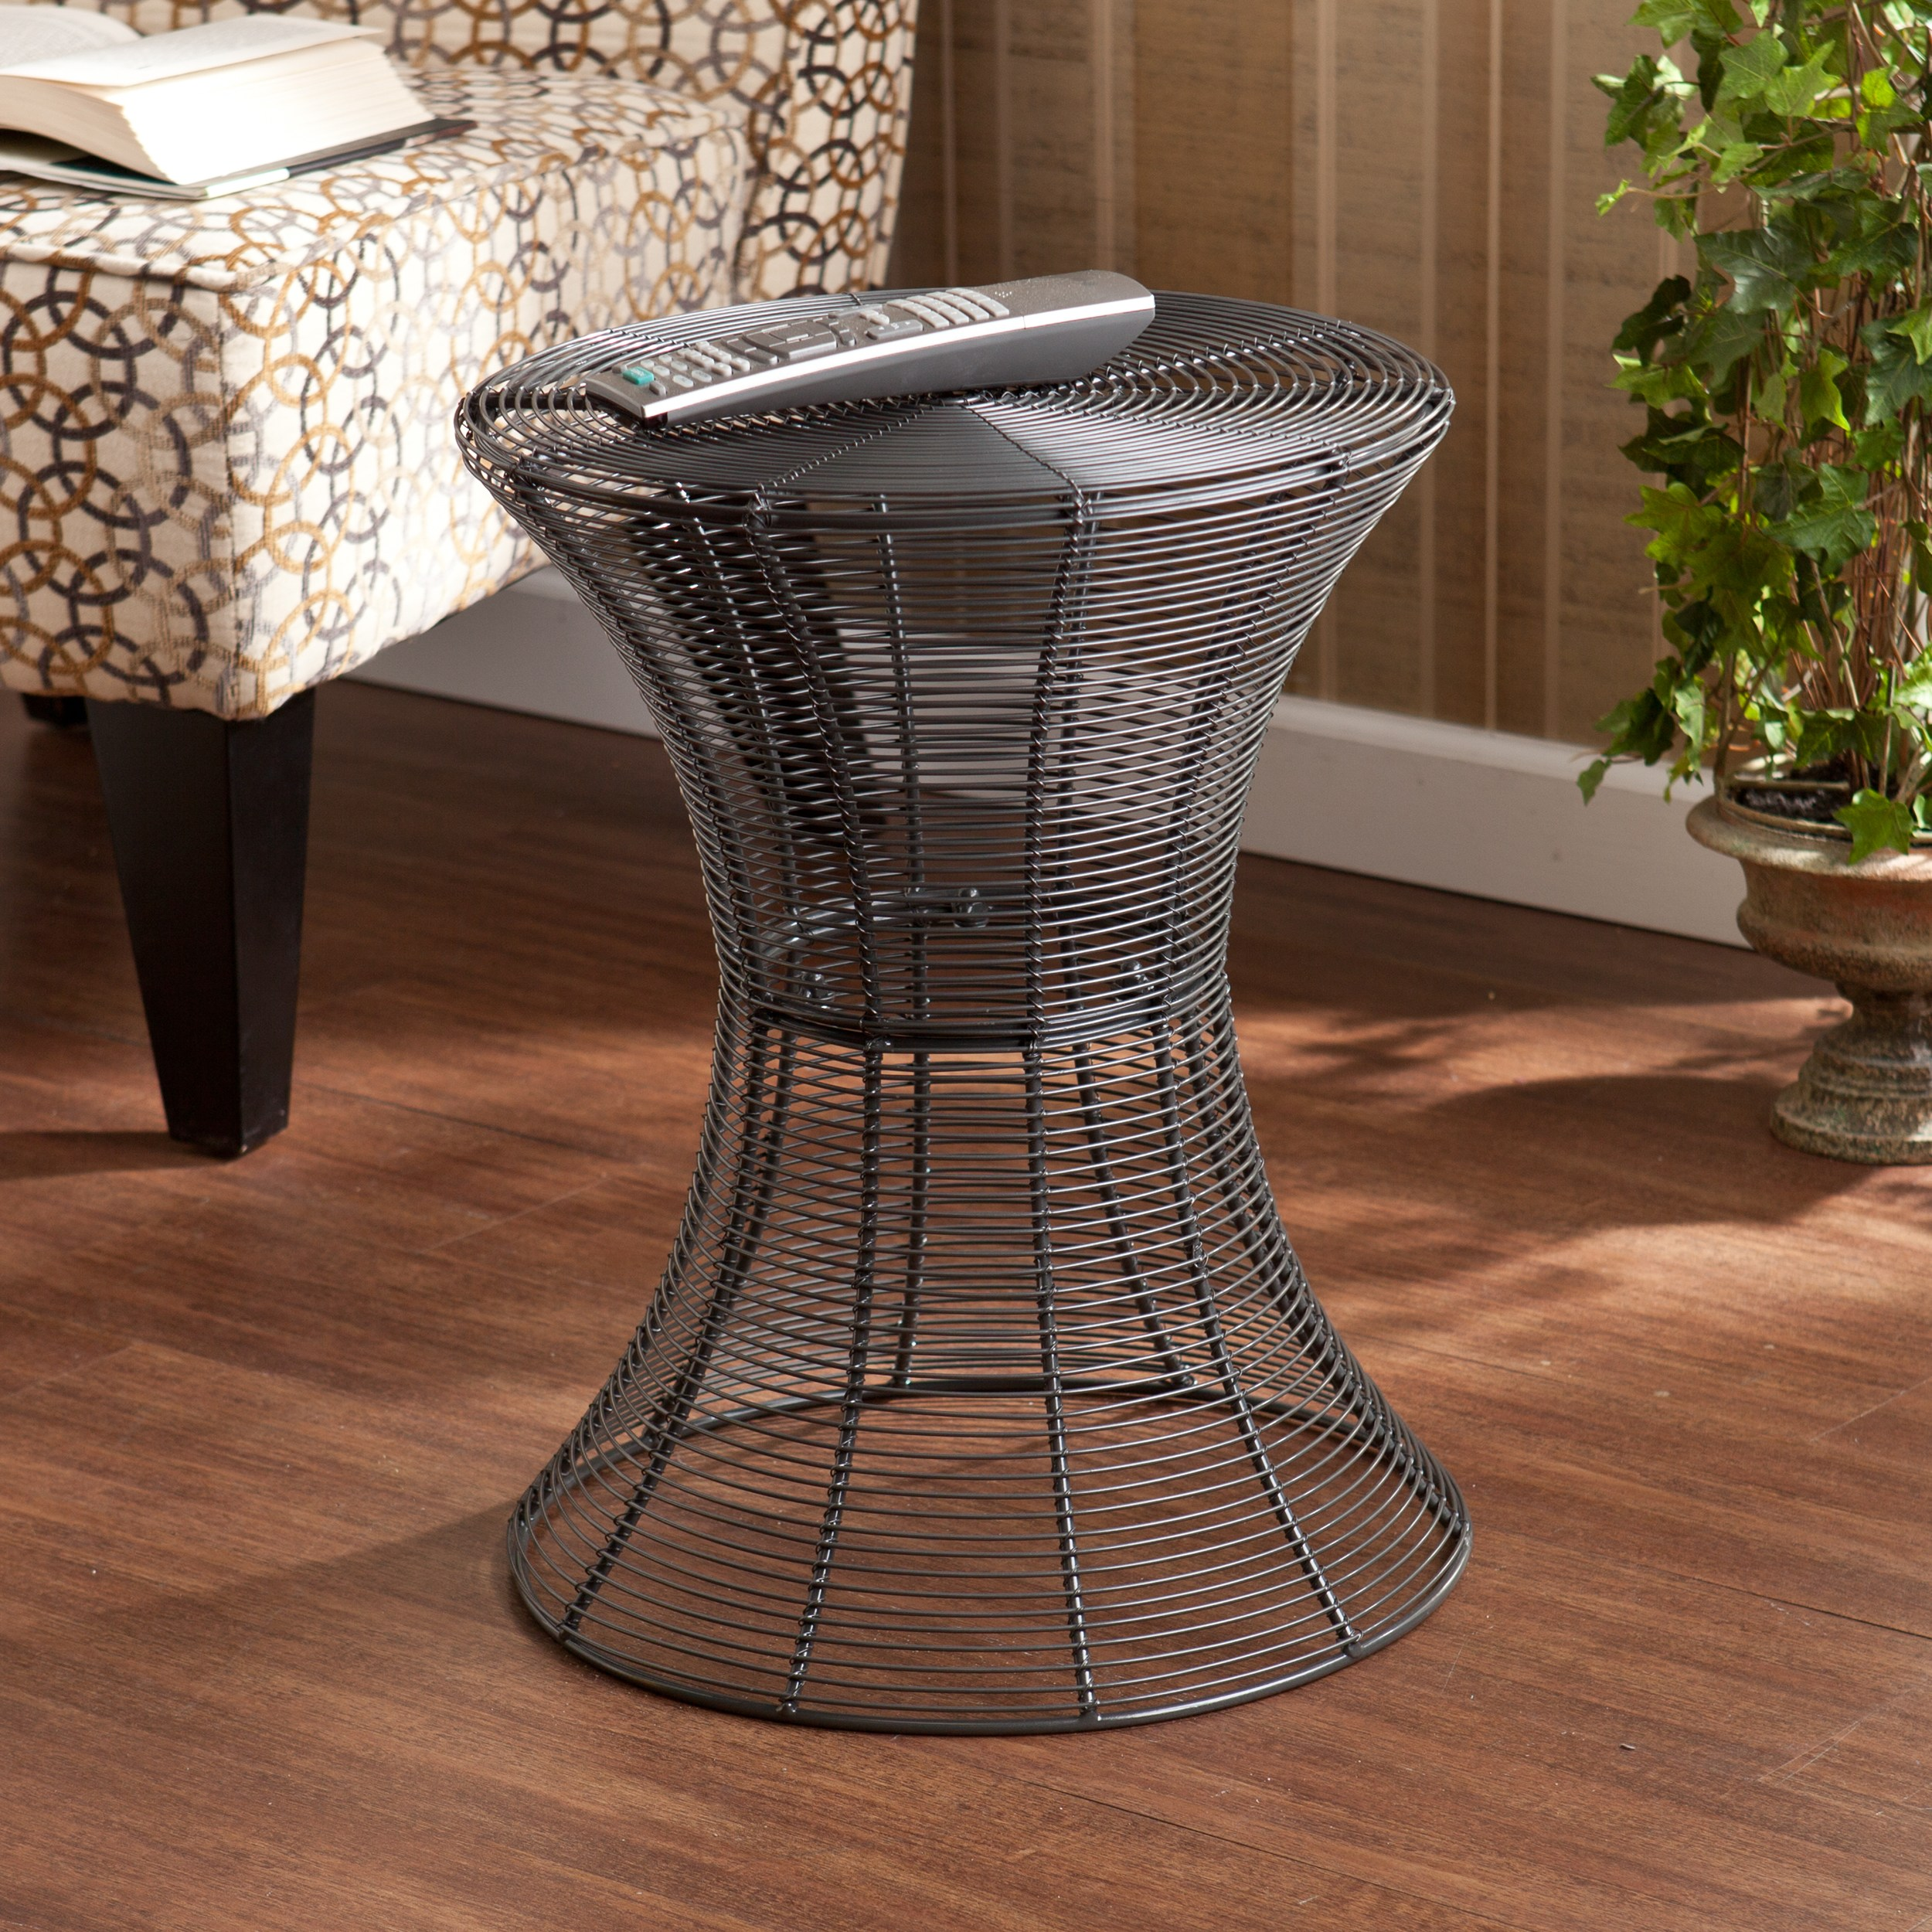 harper blvd kayden indoor outdoor silver metal accent table upton home free shipping today laminate threshold bar square patio coffee wood nightstand black modern side furniture